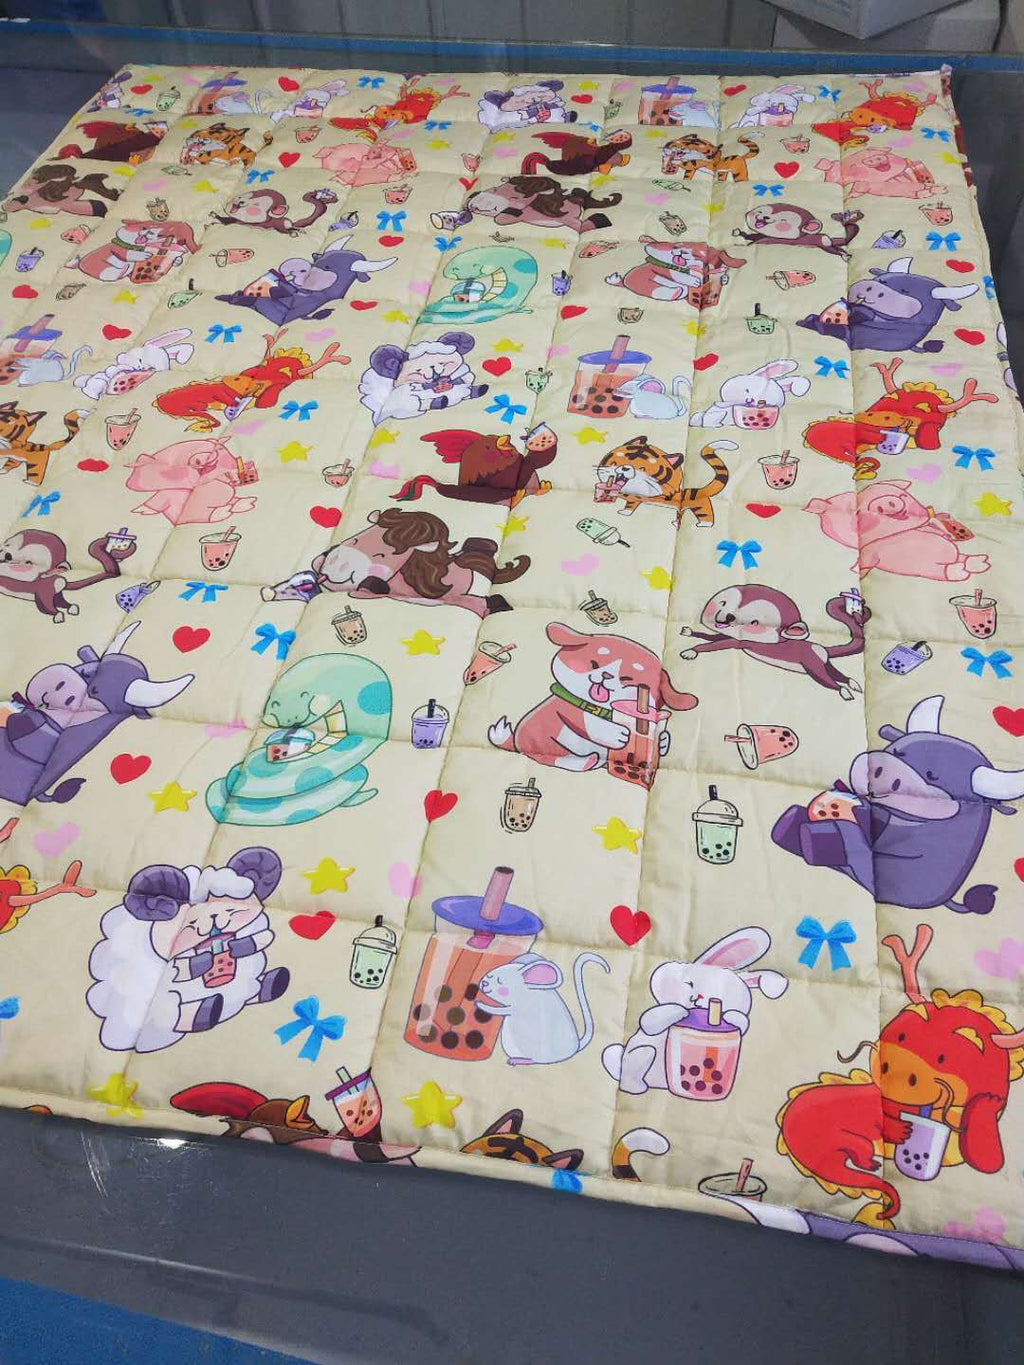 [PRE-ORDER] Cute Boba 5 lb Weighted Blanket, 60x50""